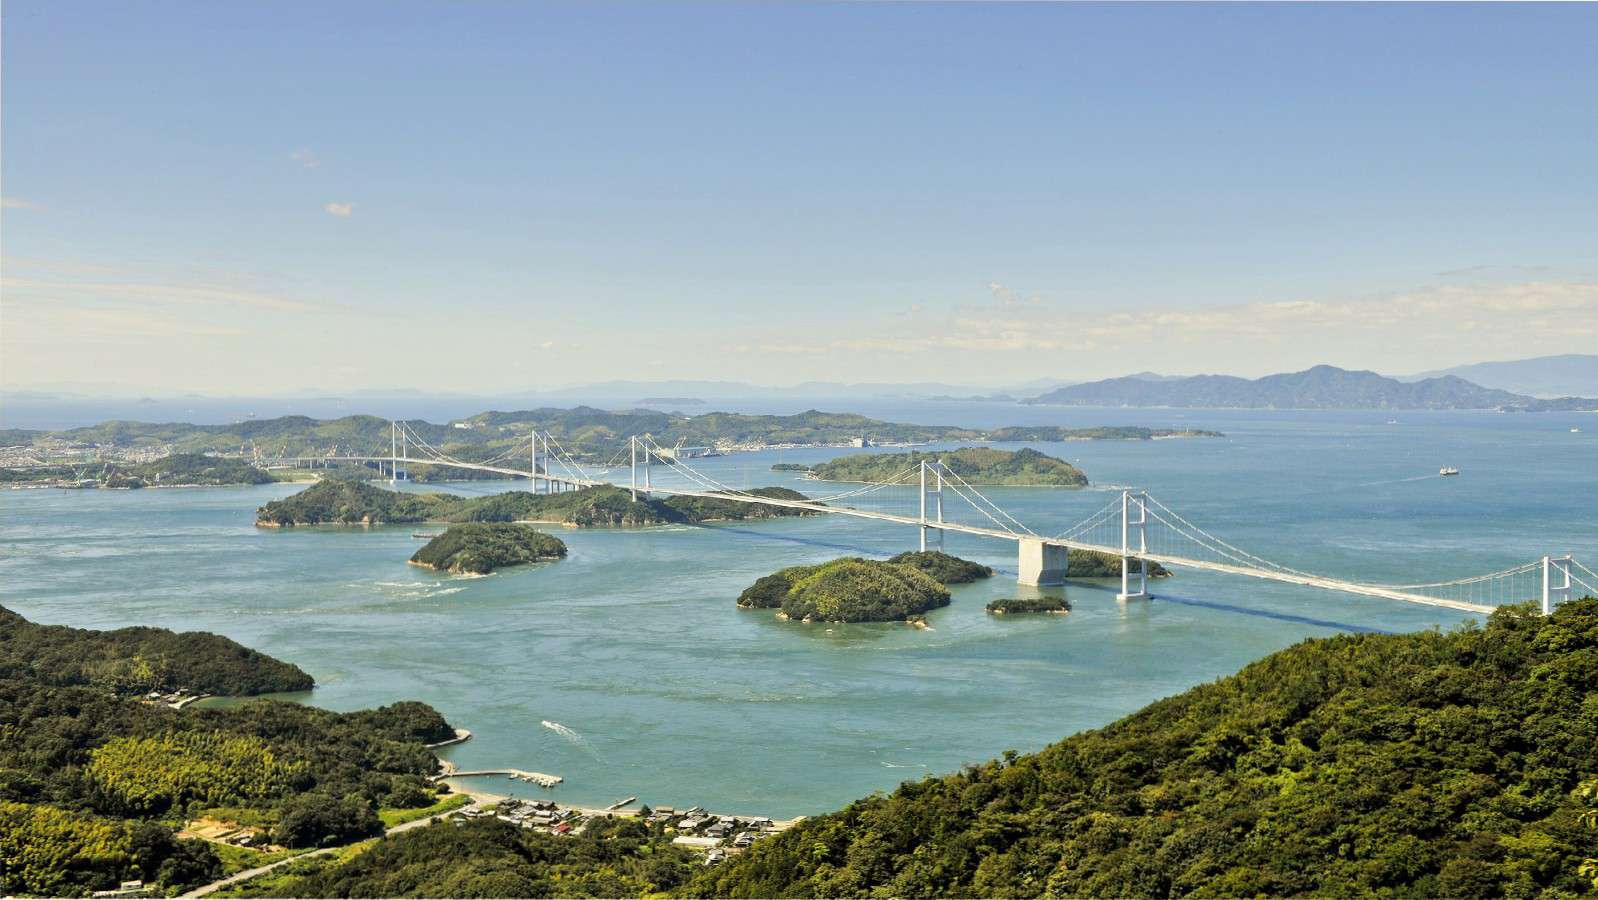 Attempting the Shimanami Kaido Cycling Road? Here are 10 bicycle-friendly places to stay that even offer bicycle rentals!